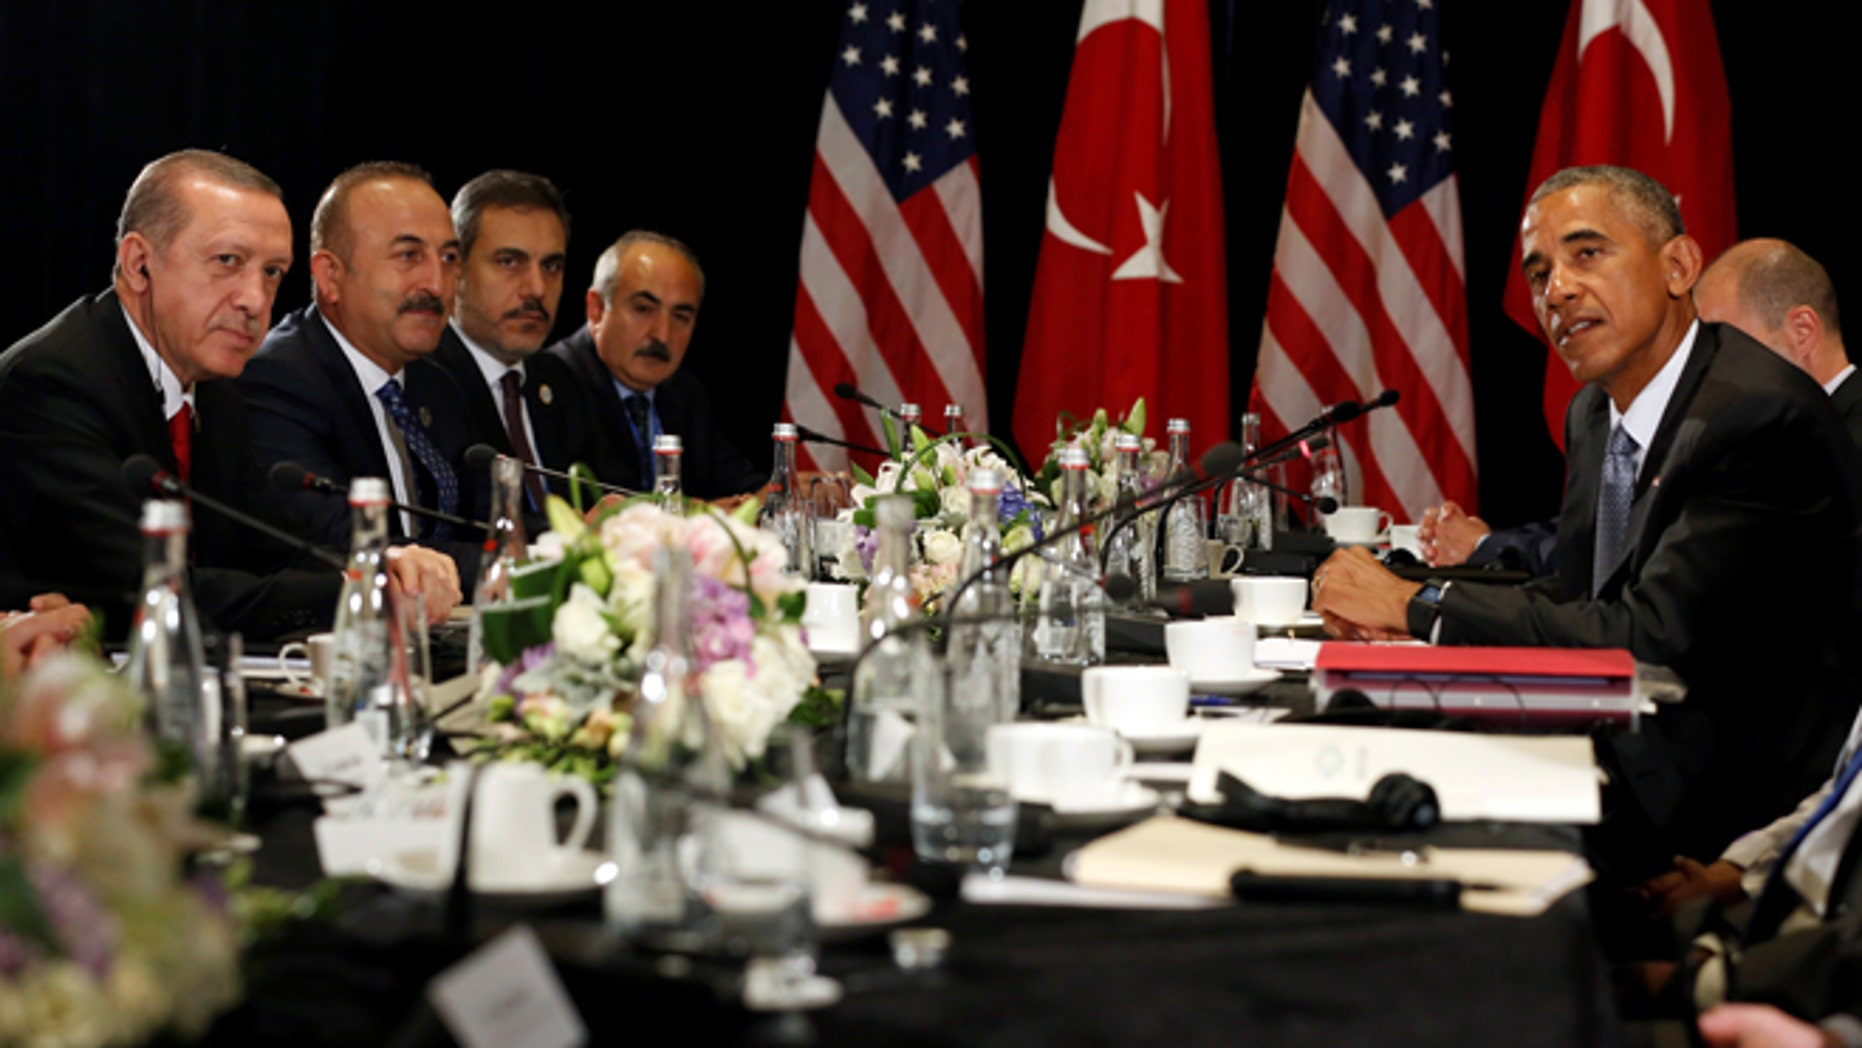 Sept. 4, 2016: President Obama (R) and Turkey's President Tayyip Erdogan (L) at the G20 Summit, in Hangzhou, China. (REUTERS)